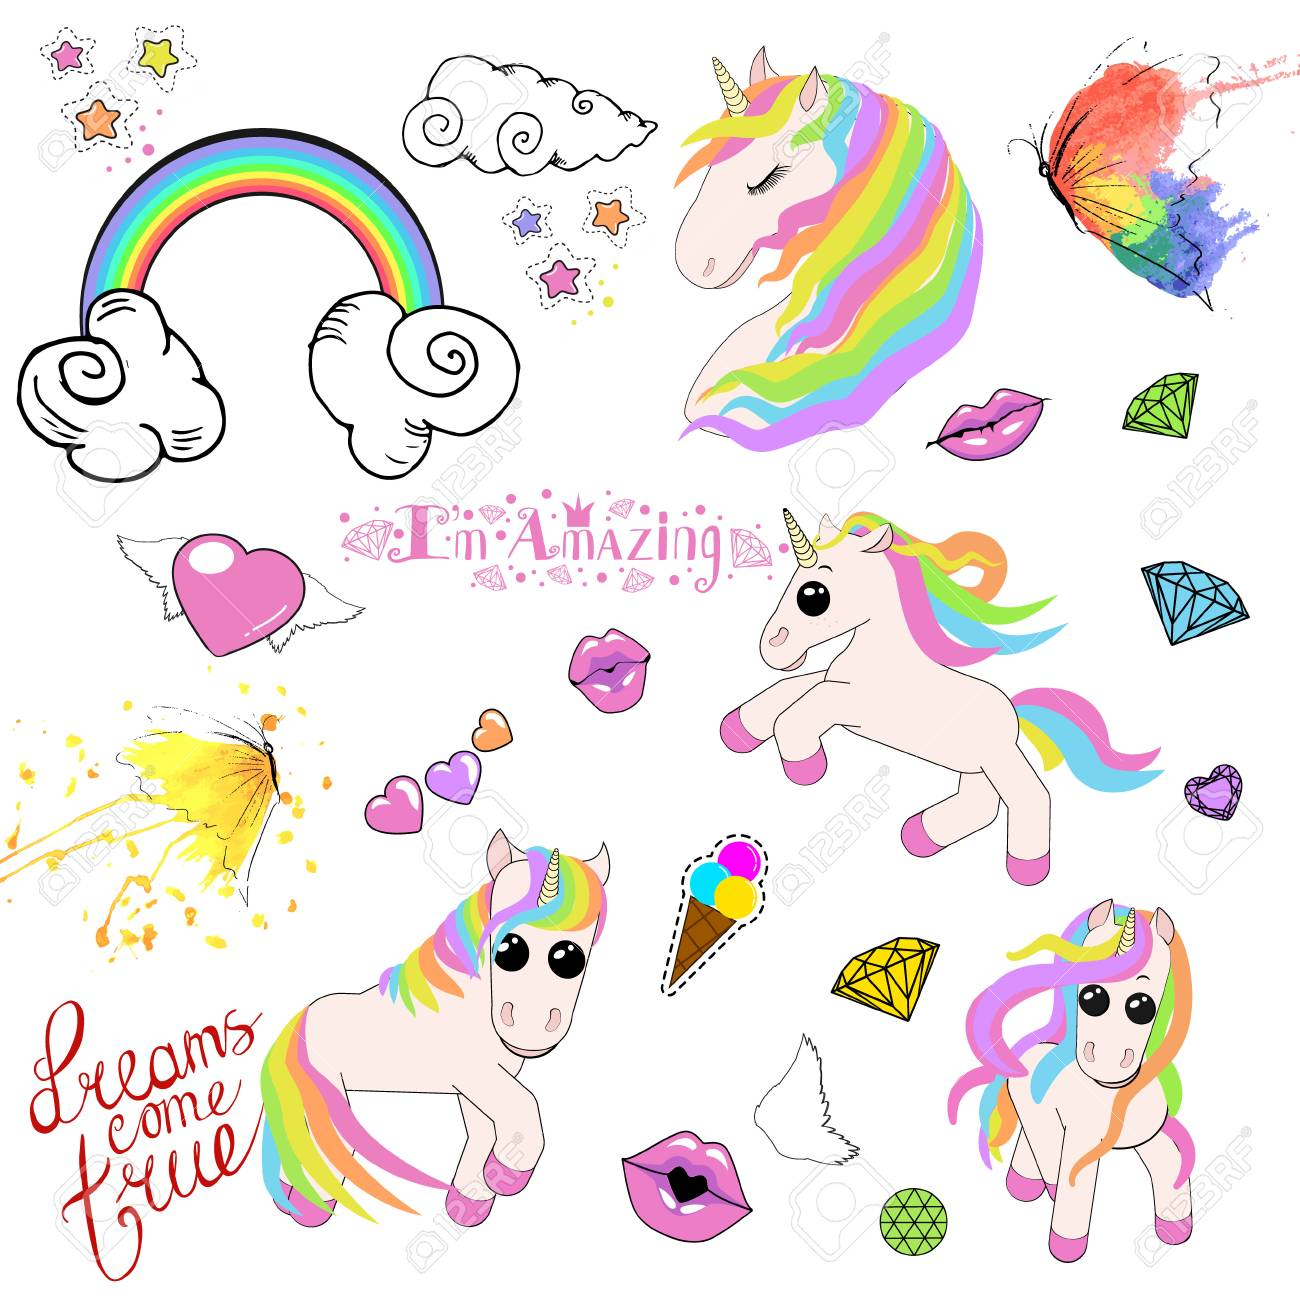 A set of icons of unicorns, stars, ice cream, rainbow, clouds with curls, lips in a kiss, ice cream in a horn and diamonds. vector illustration isolated on white background - 127046489